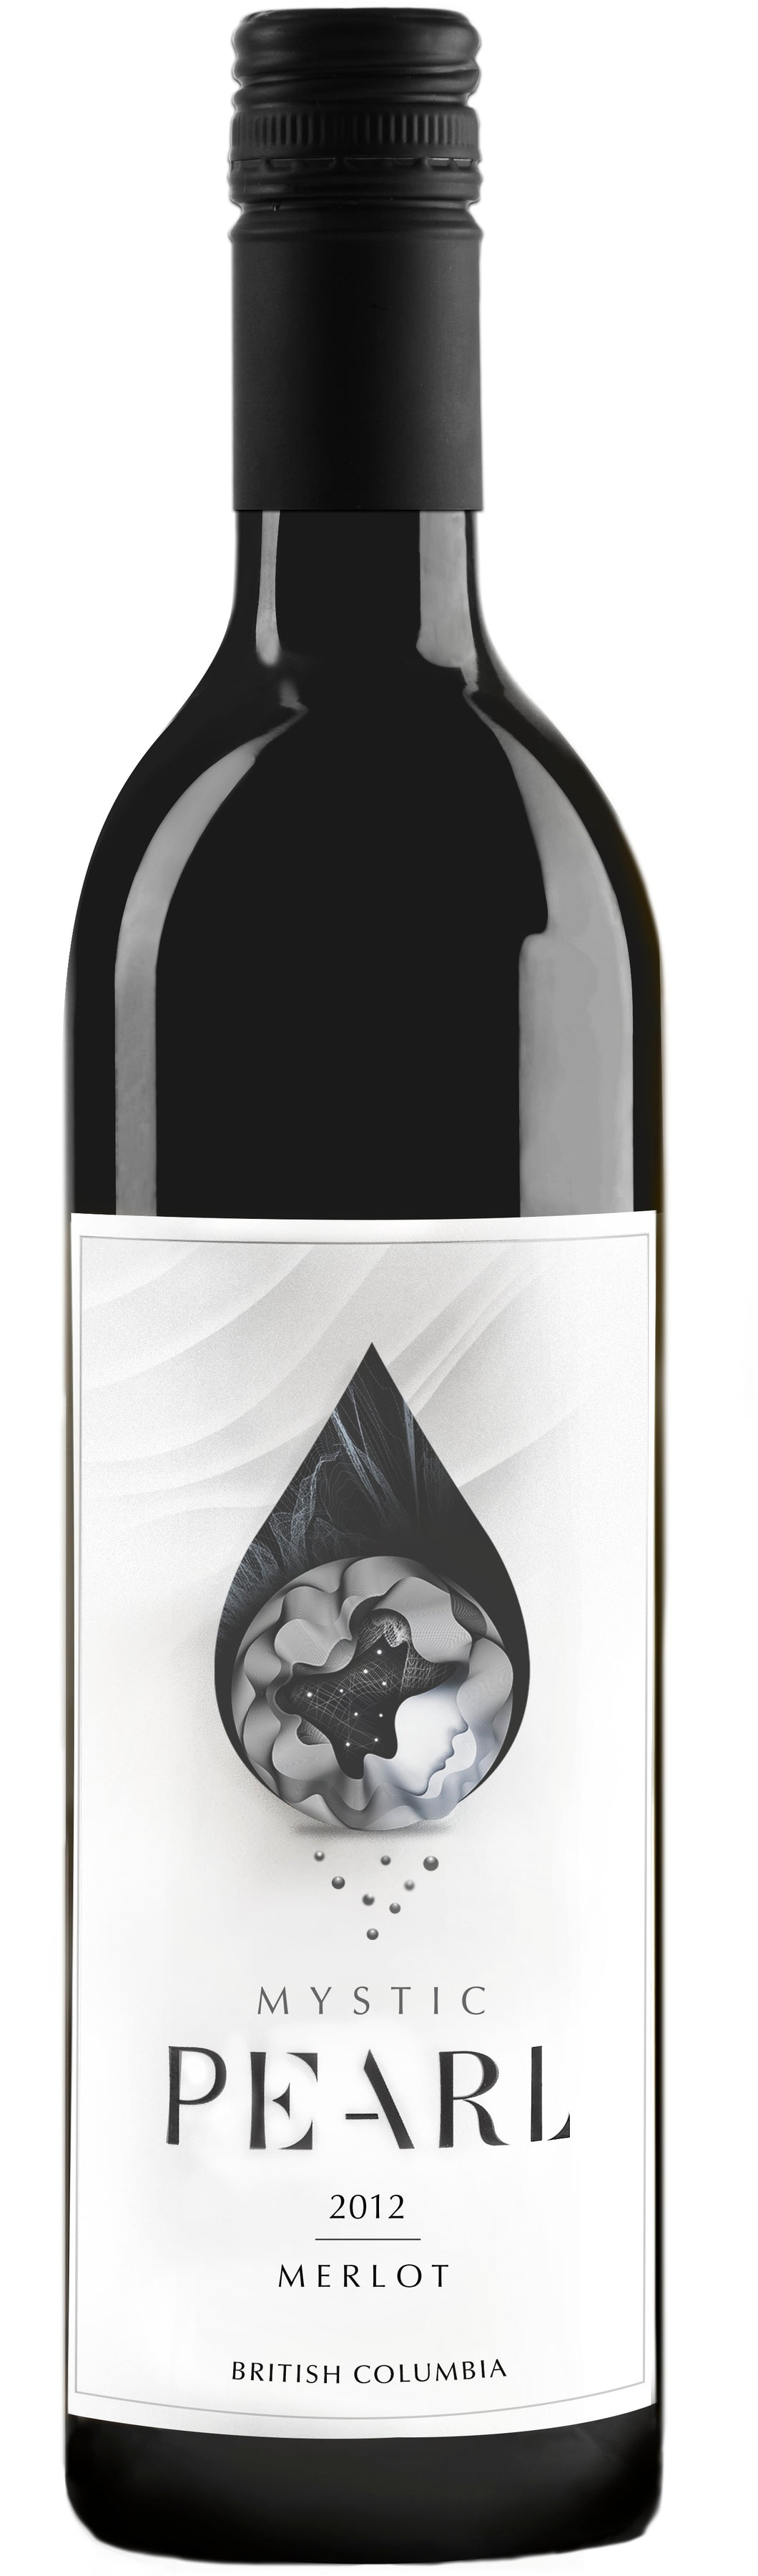 MYSTIC PEARL MERLOT BOTTLE